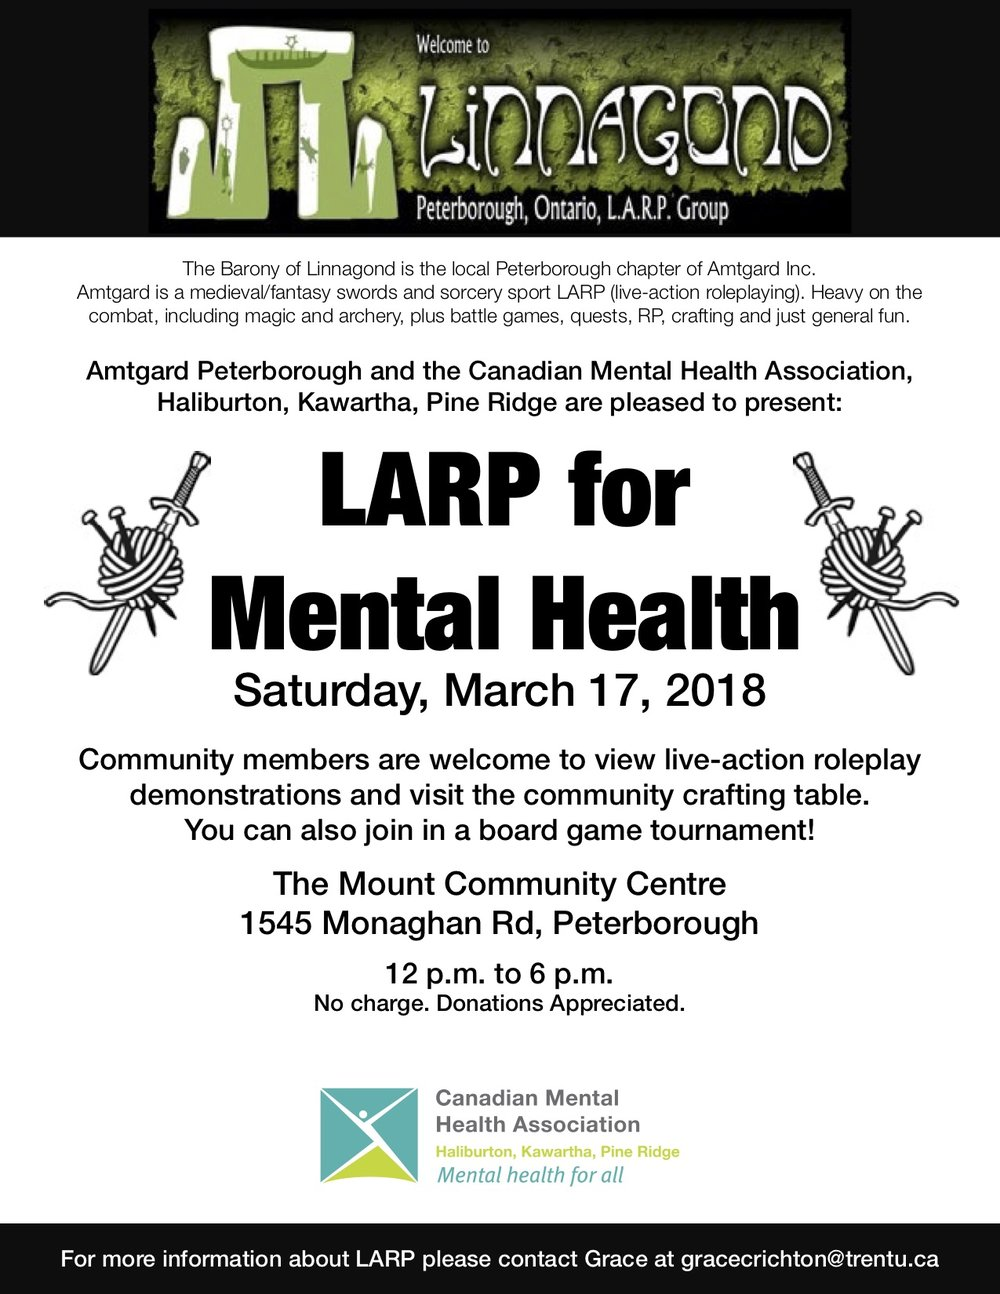 LARP-for-Mental-Health-poster-2018.jpg